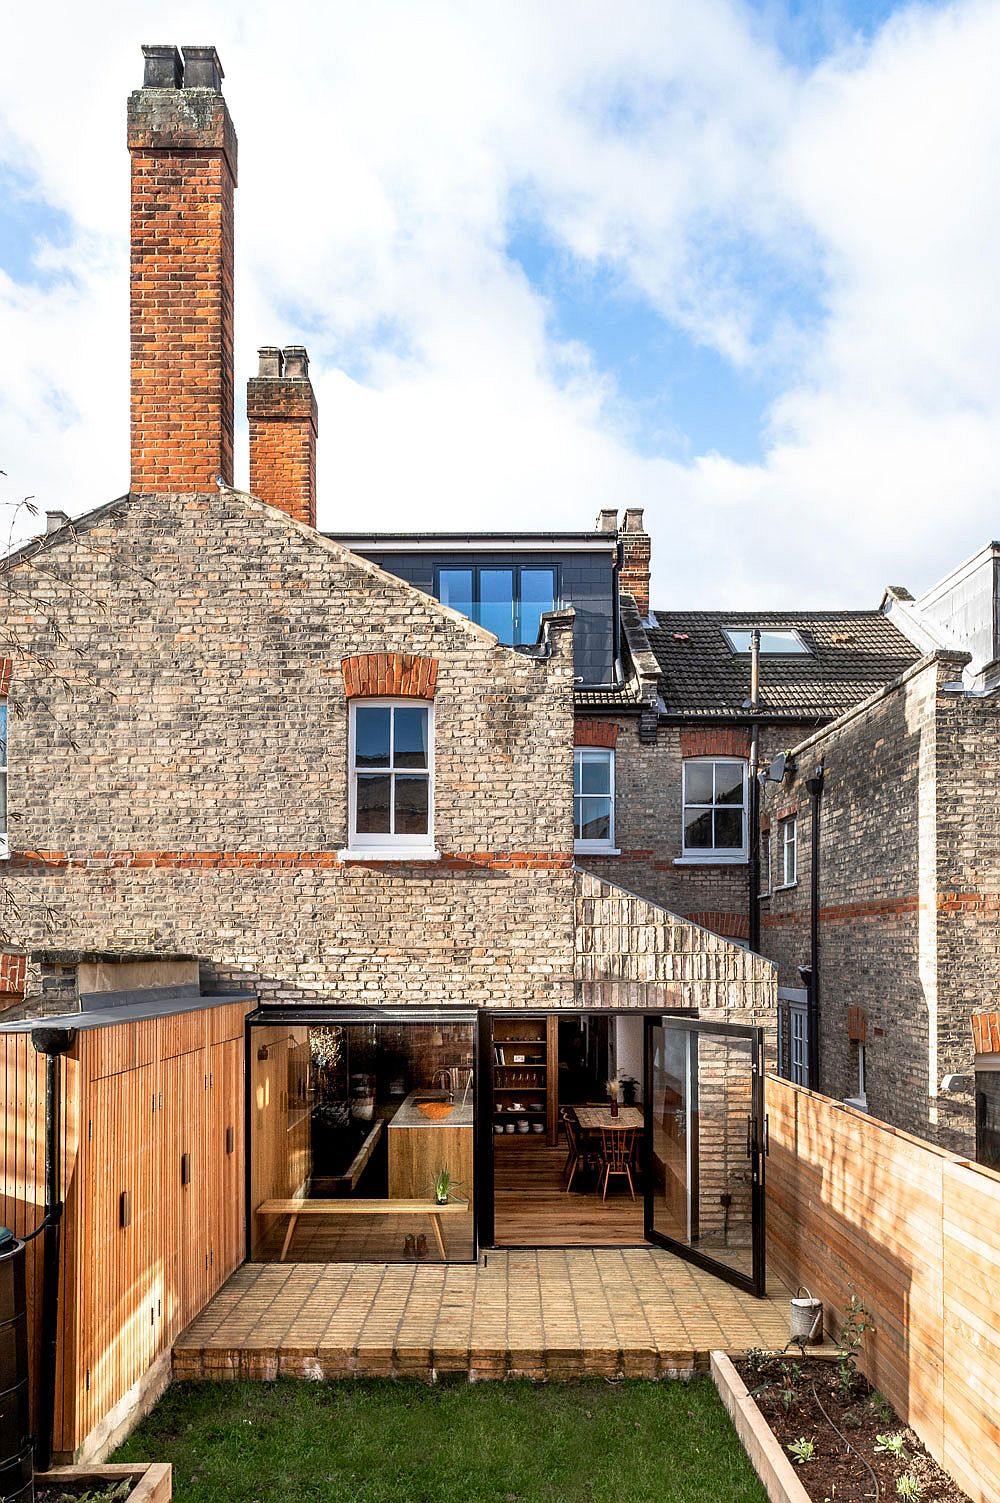 North London home extension that blends in with the visual appeal of the original classic home